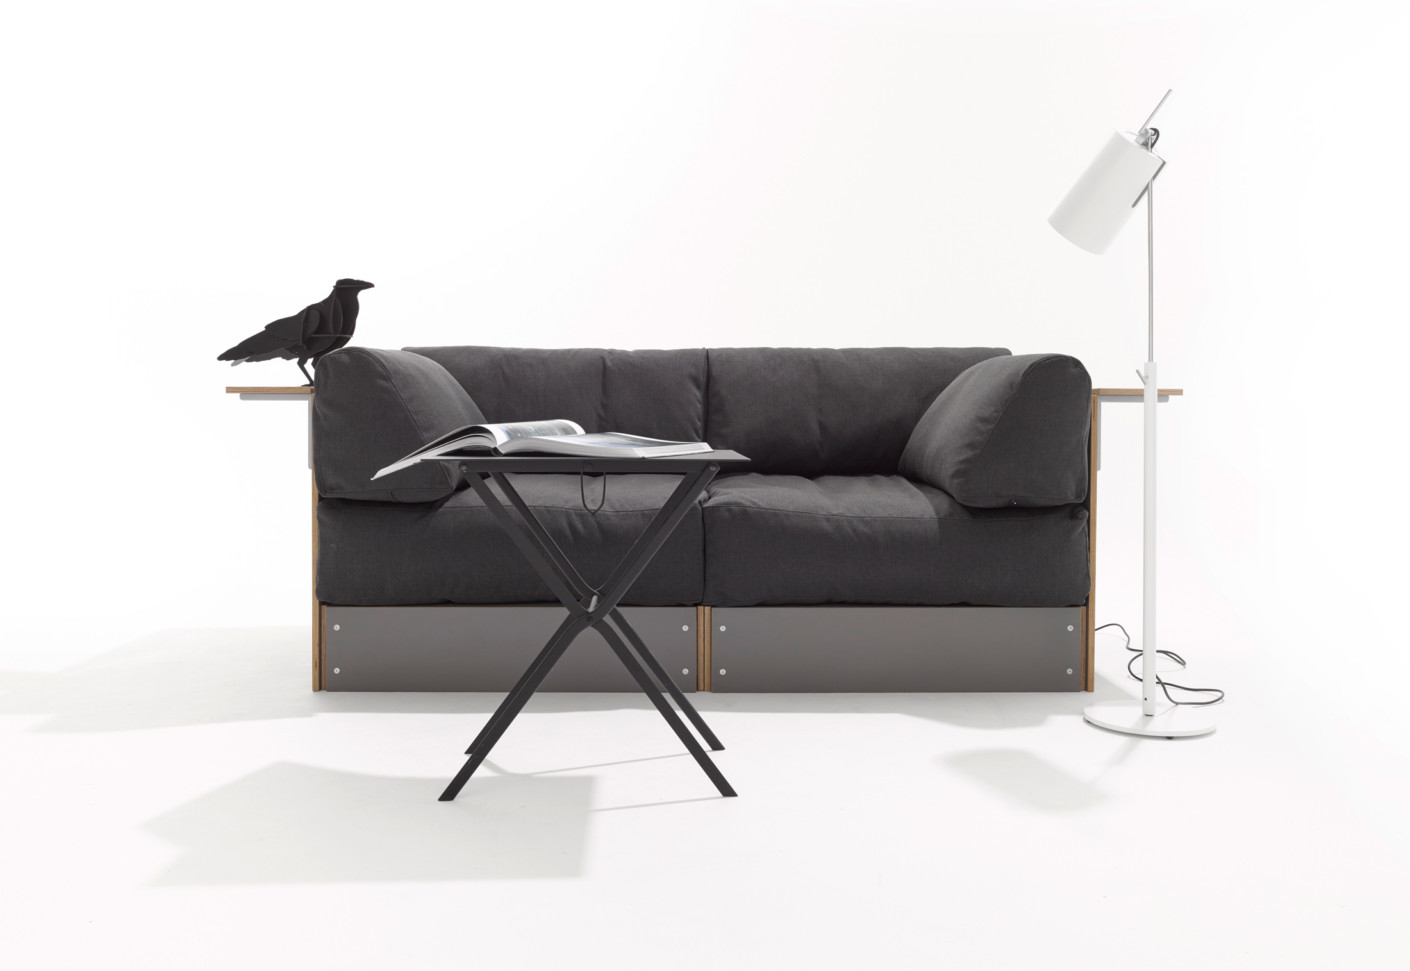 rolf heide sofabank von m ller m belwerkst tten stylepark. Black Bedroom Furniture Sets. Home Design Ideas